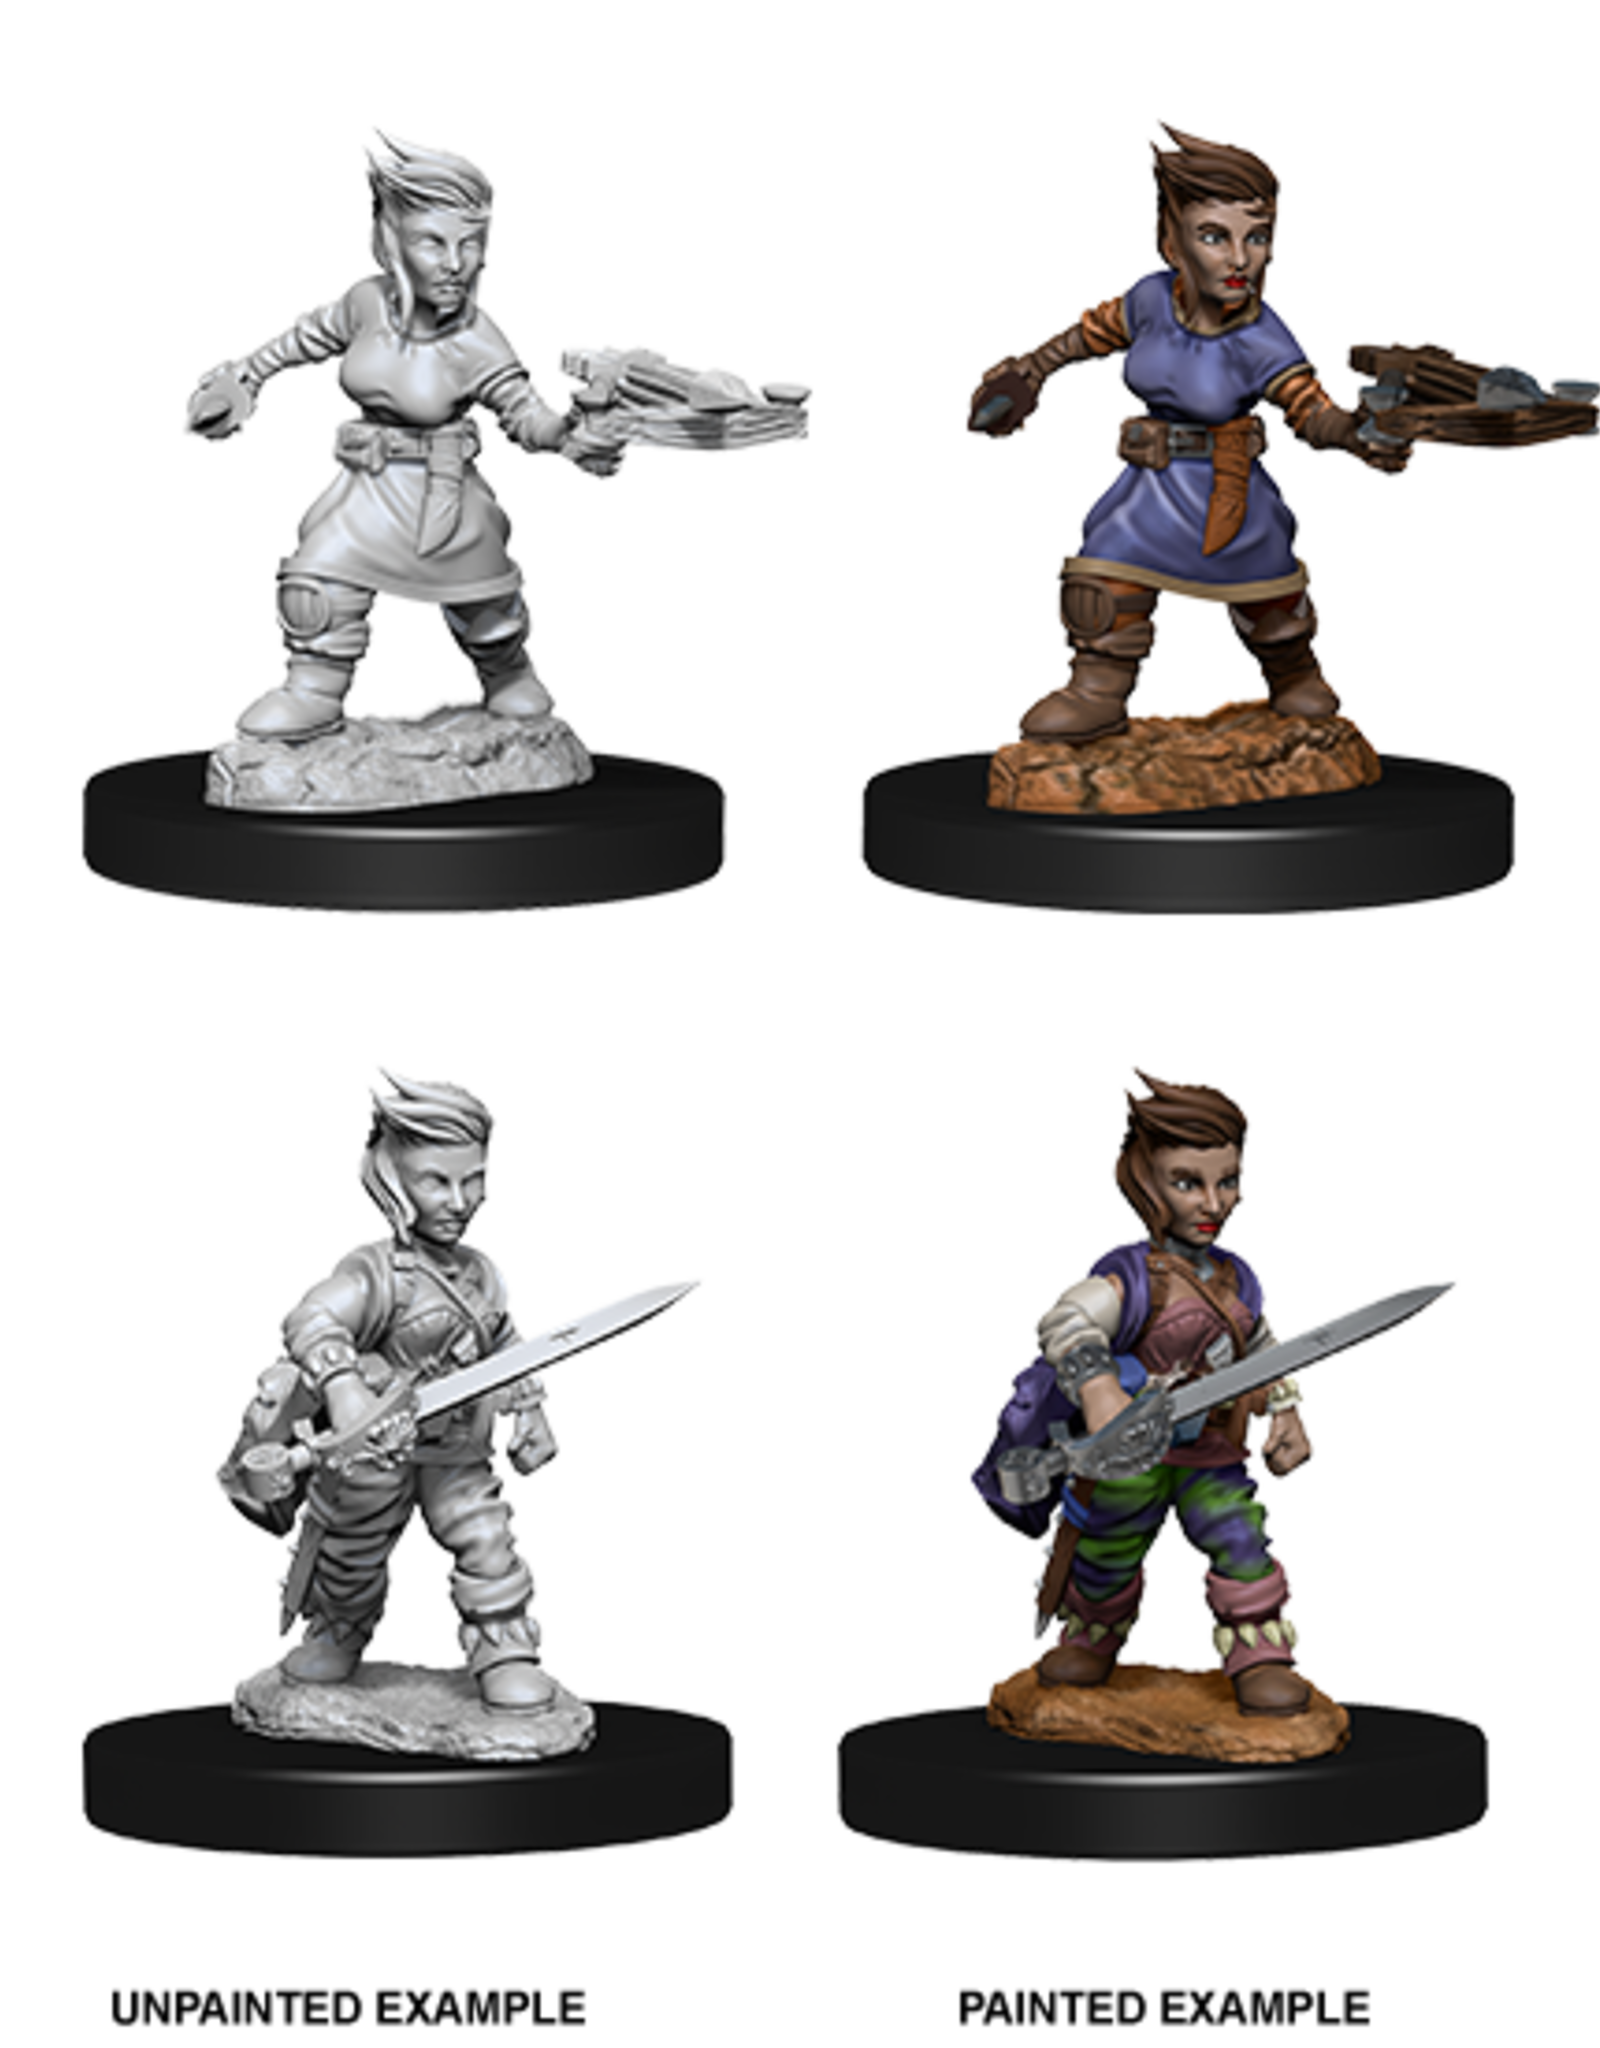 Nolzur's Marvelous Miniatures D&D D&D NMU - Female Halfling Rogue